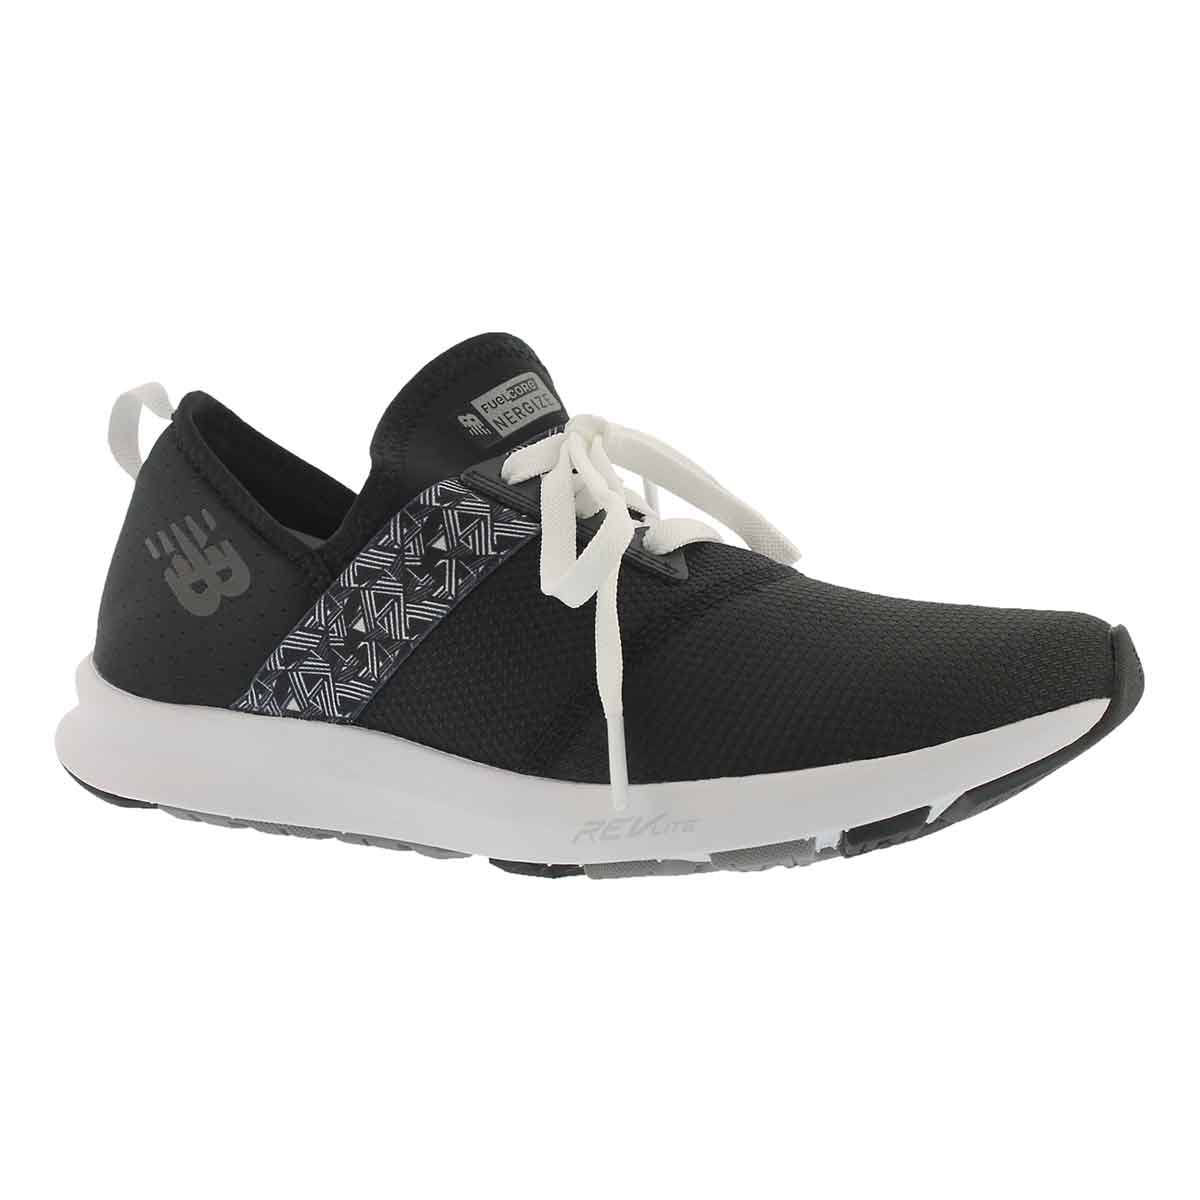 Women's FUELCORE black/white lace up sneakers